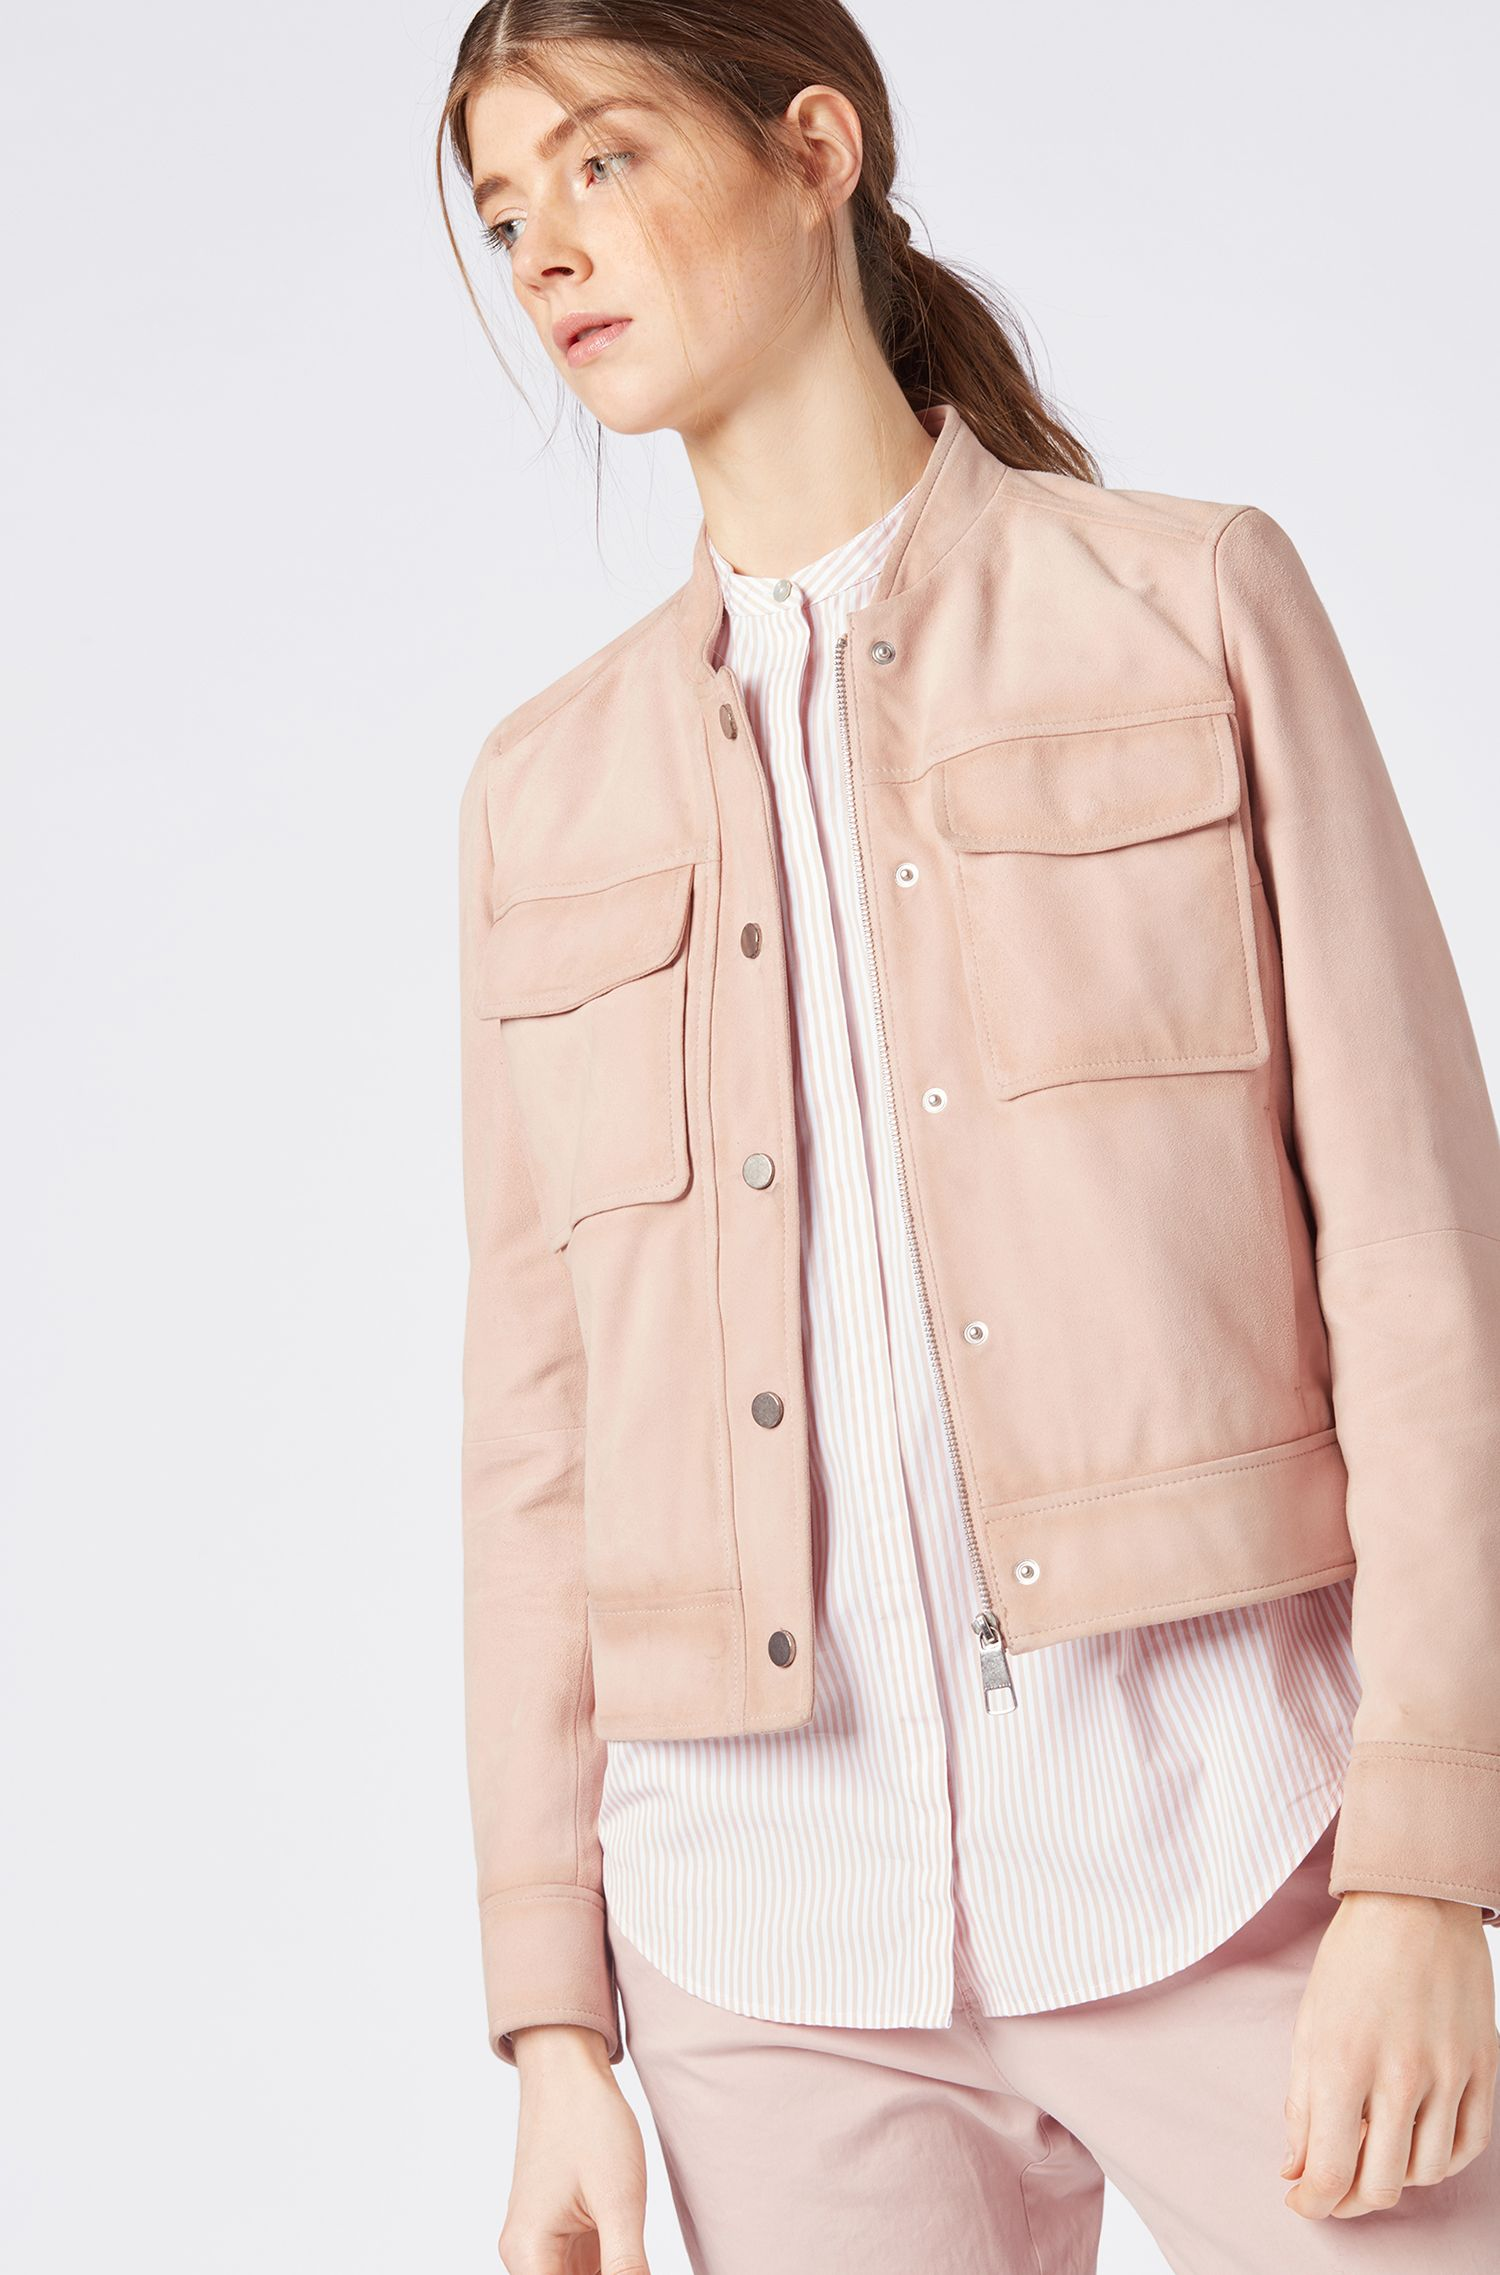 Hugo Boss - Bomber jacket in suede leather with patch pockets - 4